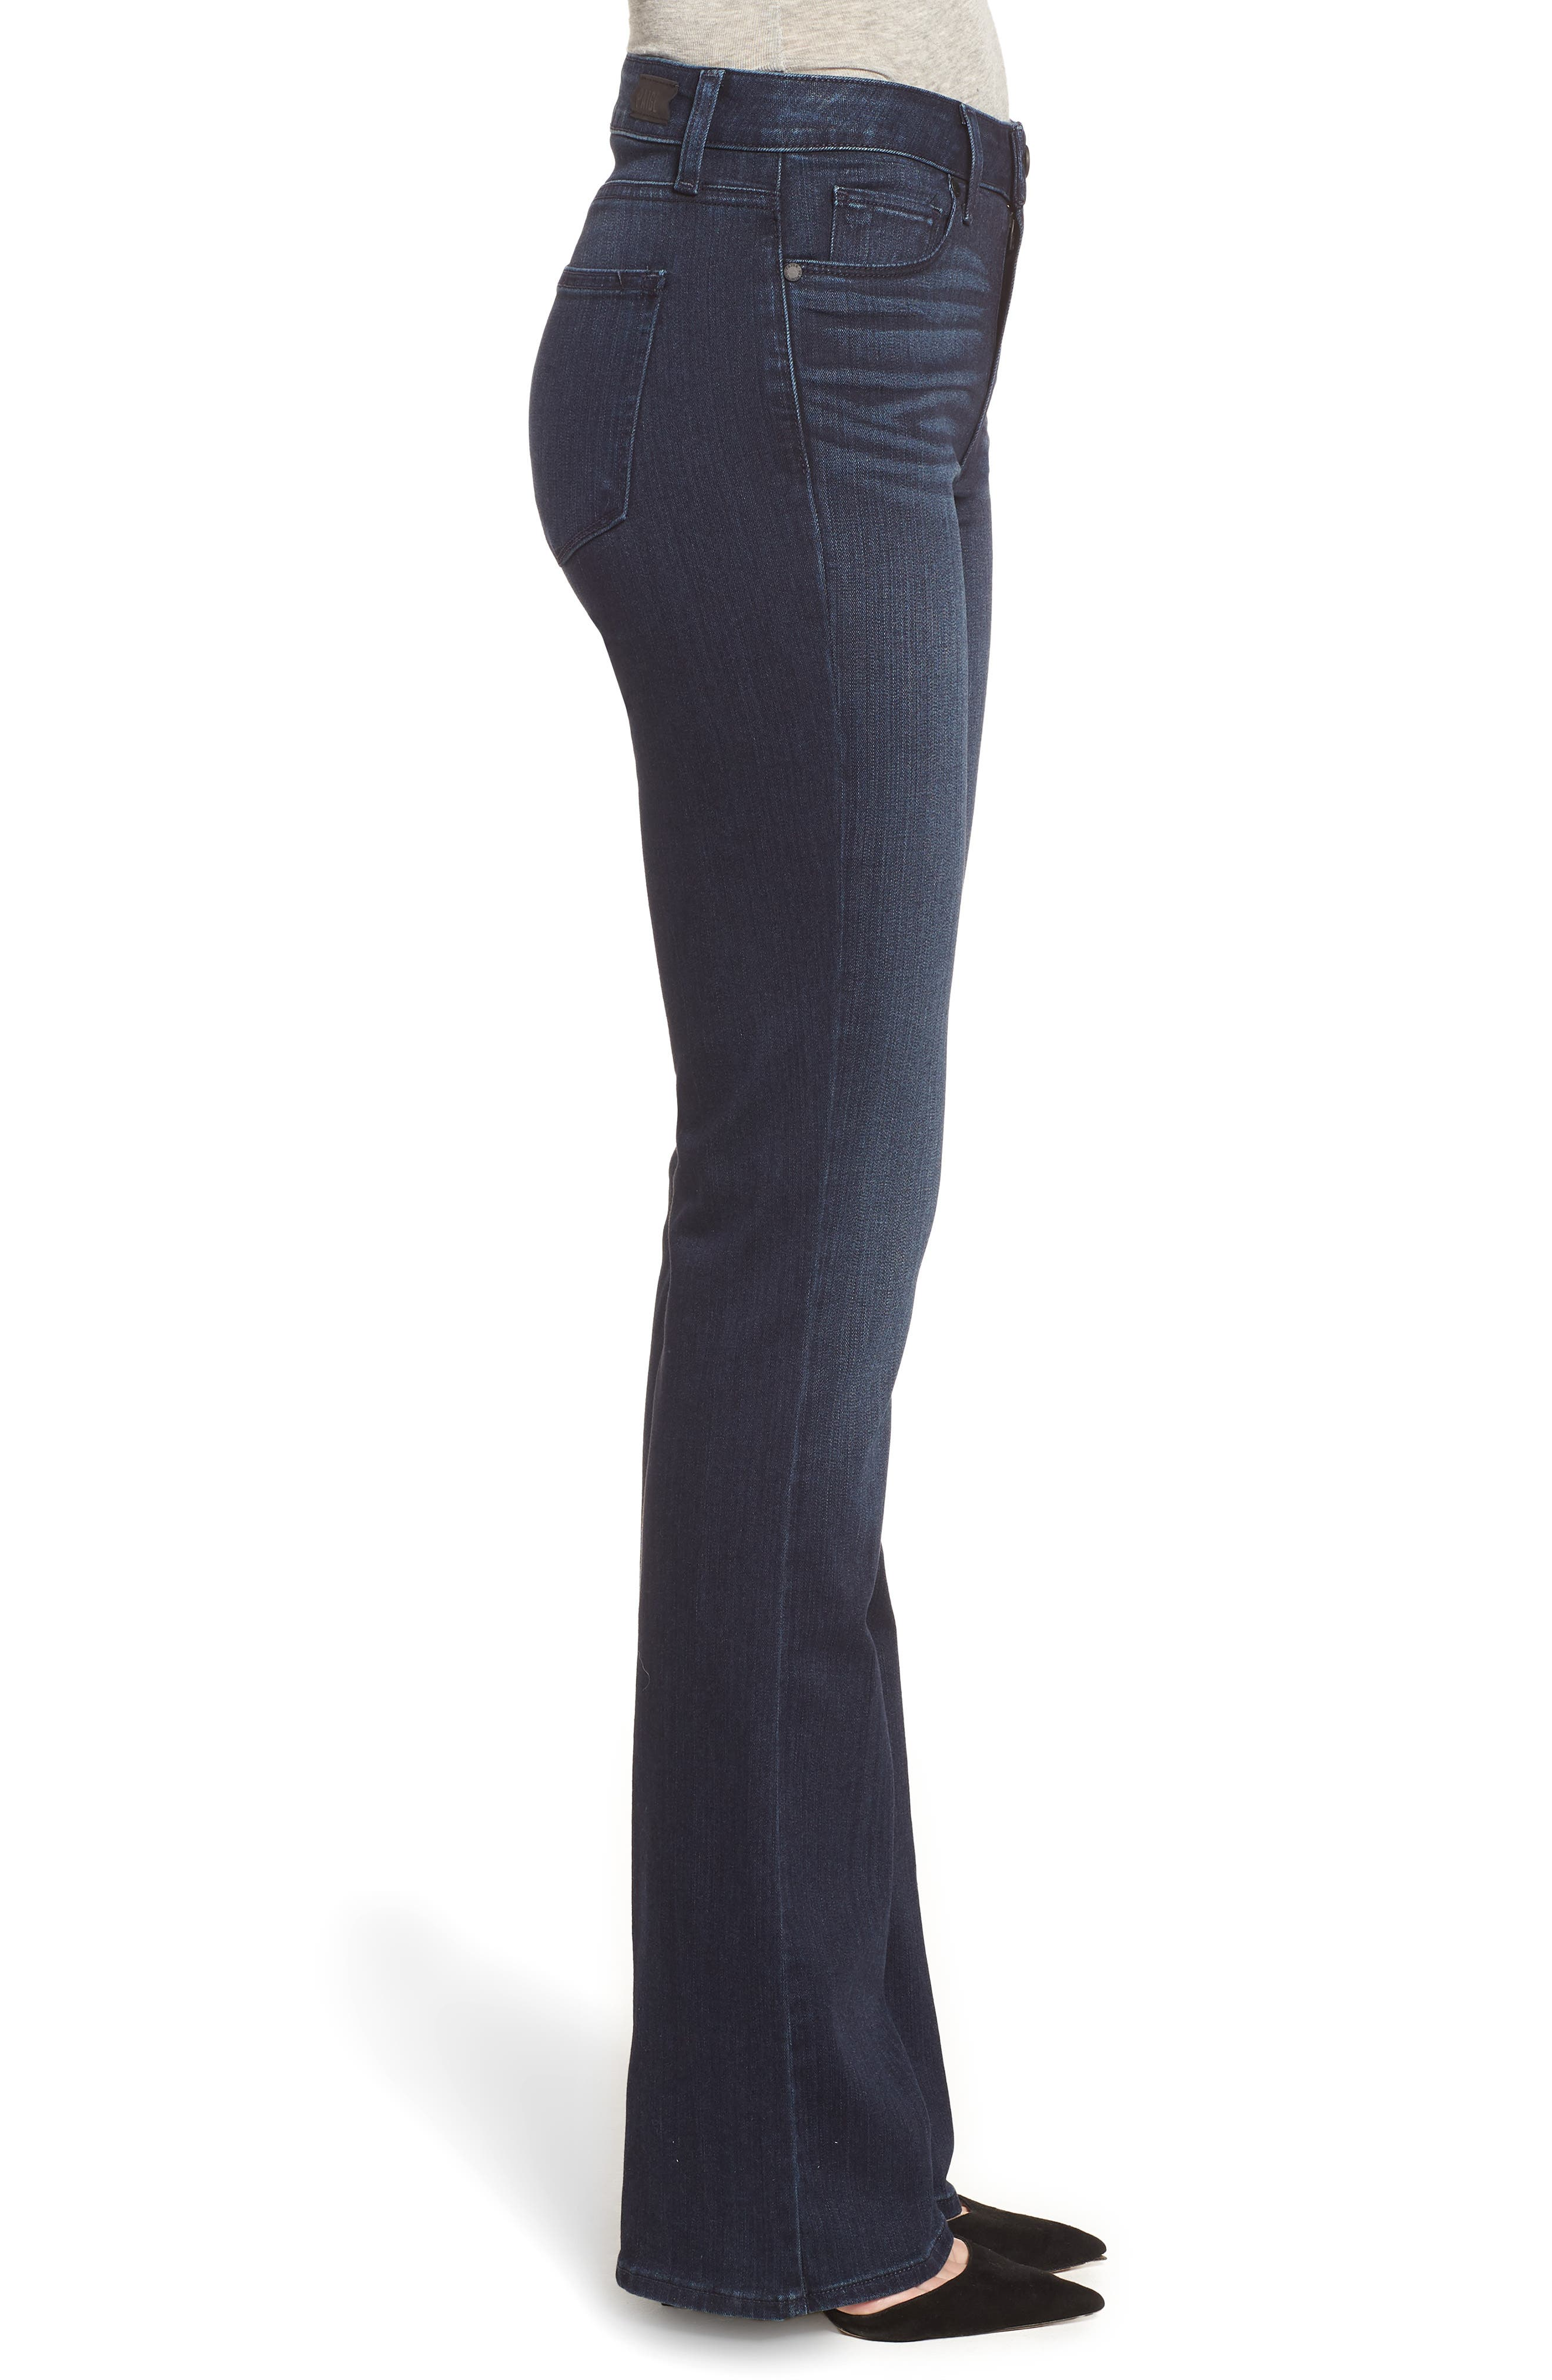 Manhattan High Waist Bootcut Jeans,                             Alternate thumbnail 3, color,                             401